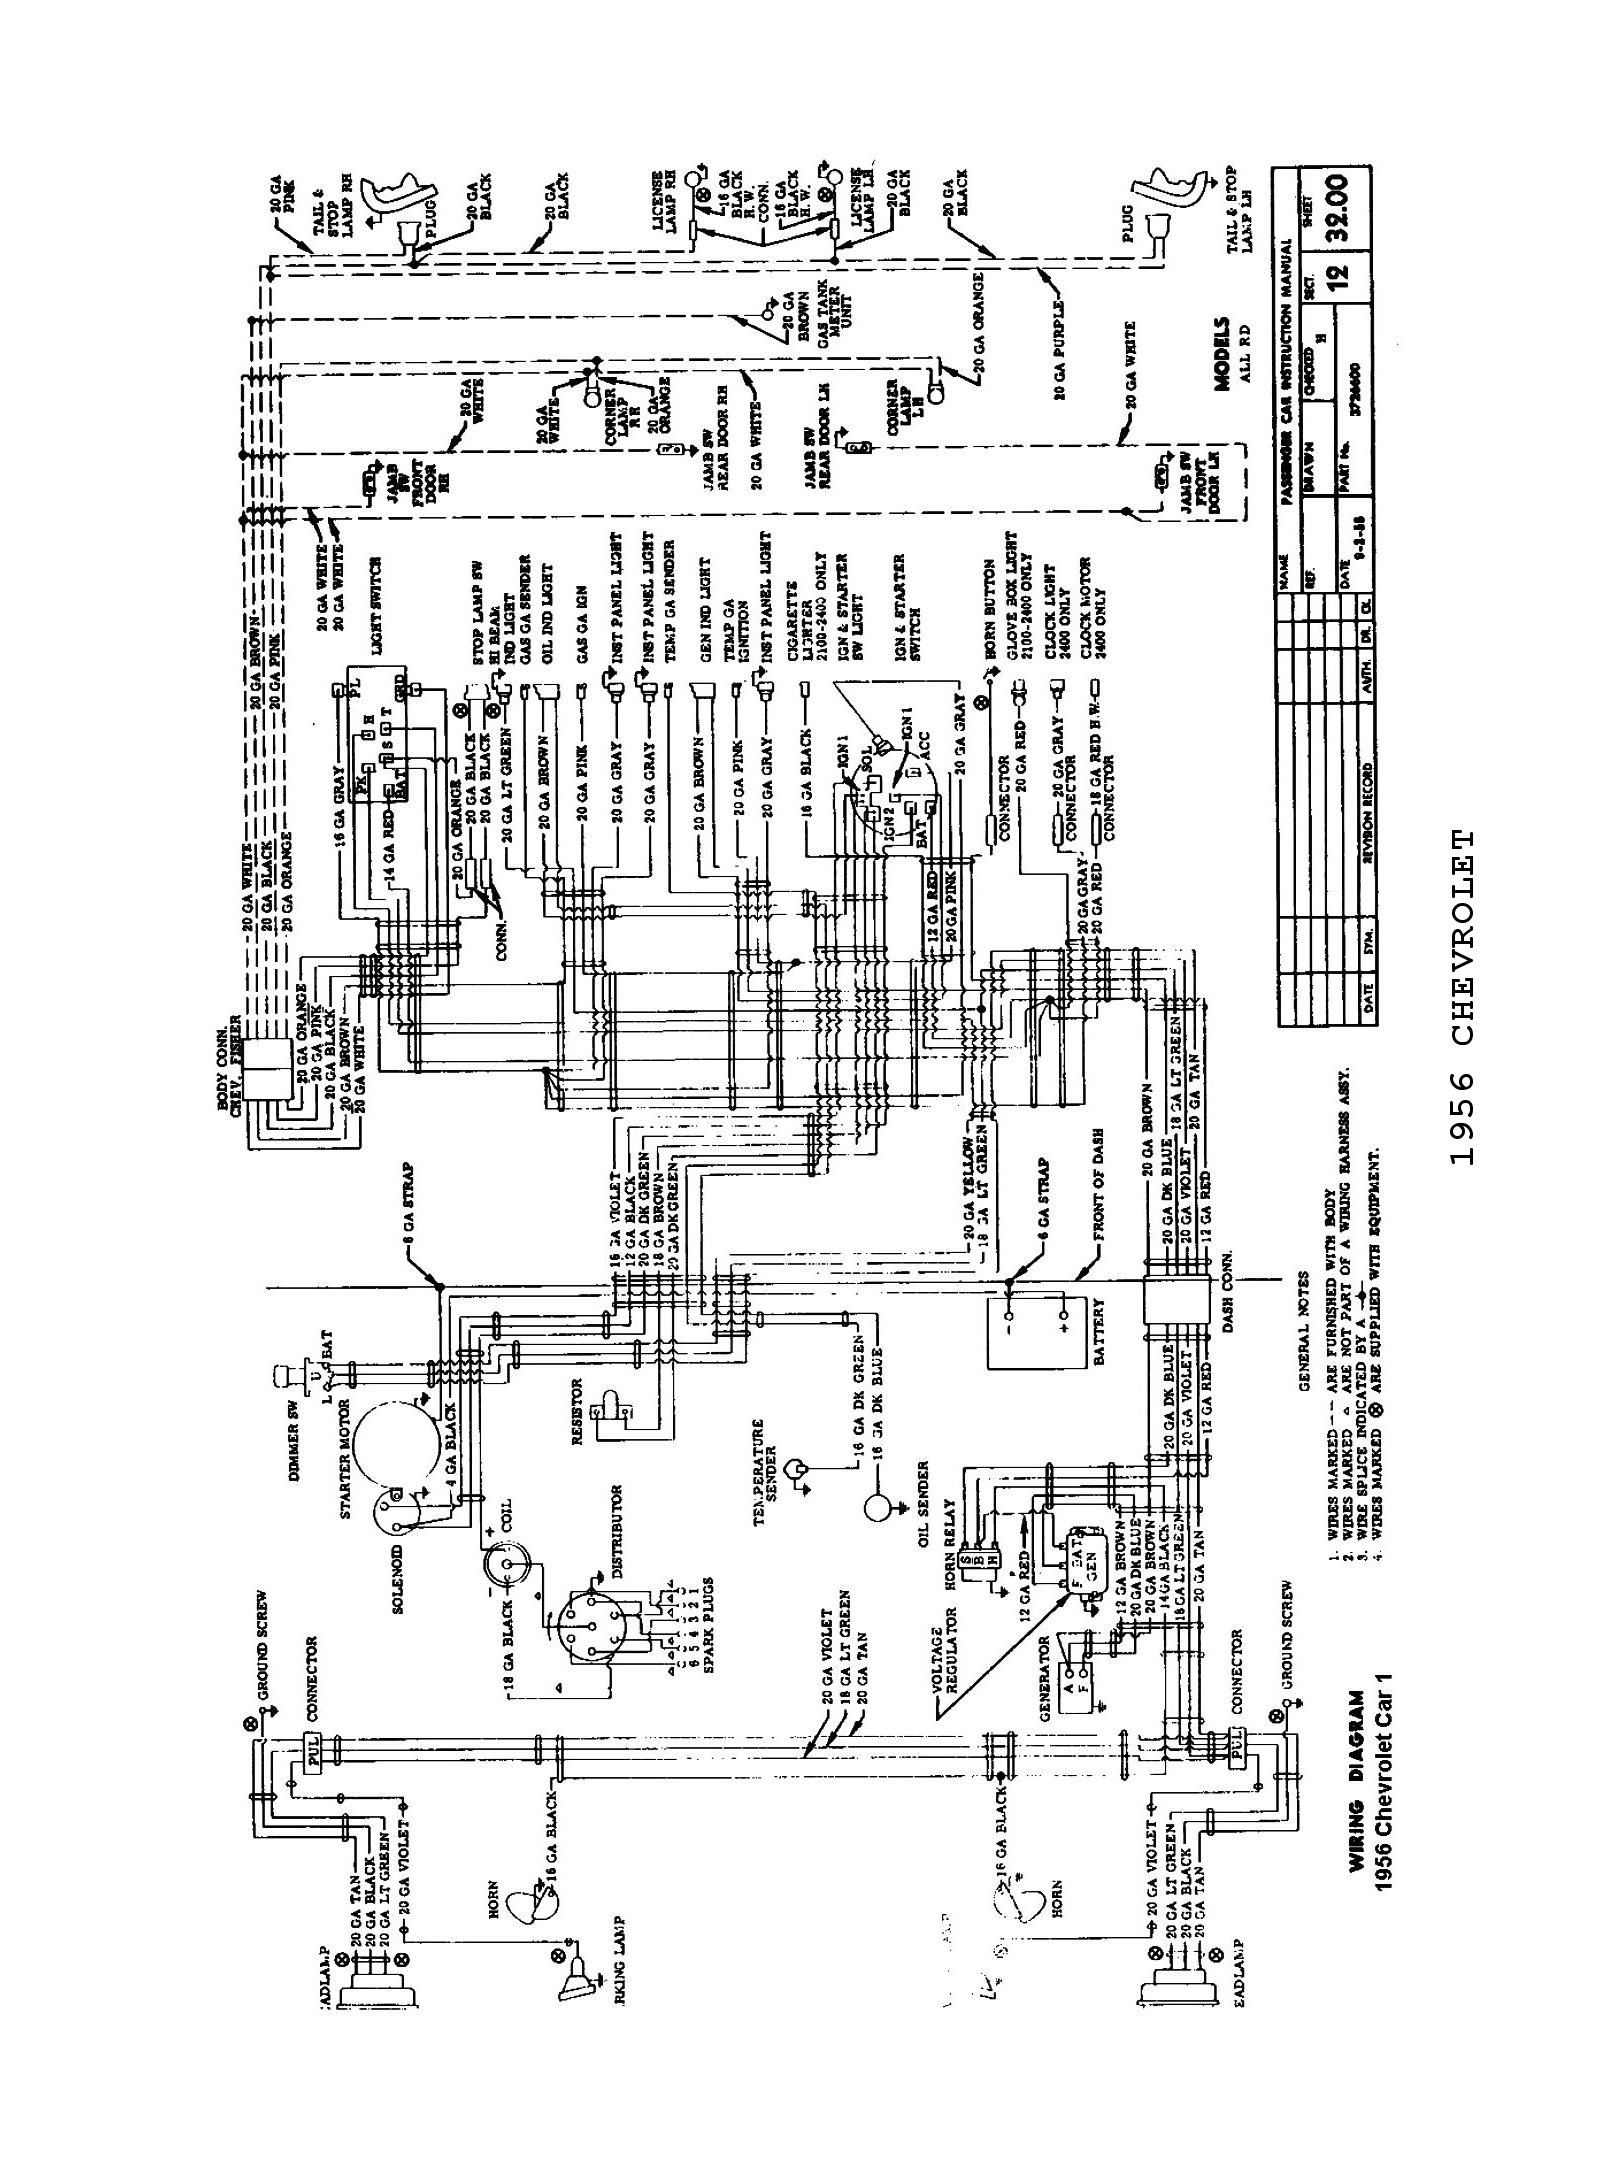 1948 ford truck wiring diagram